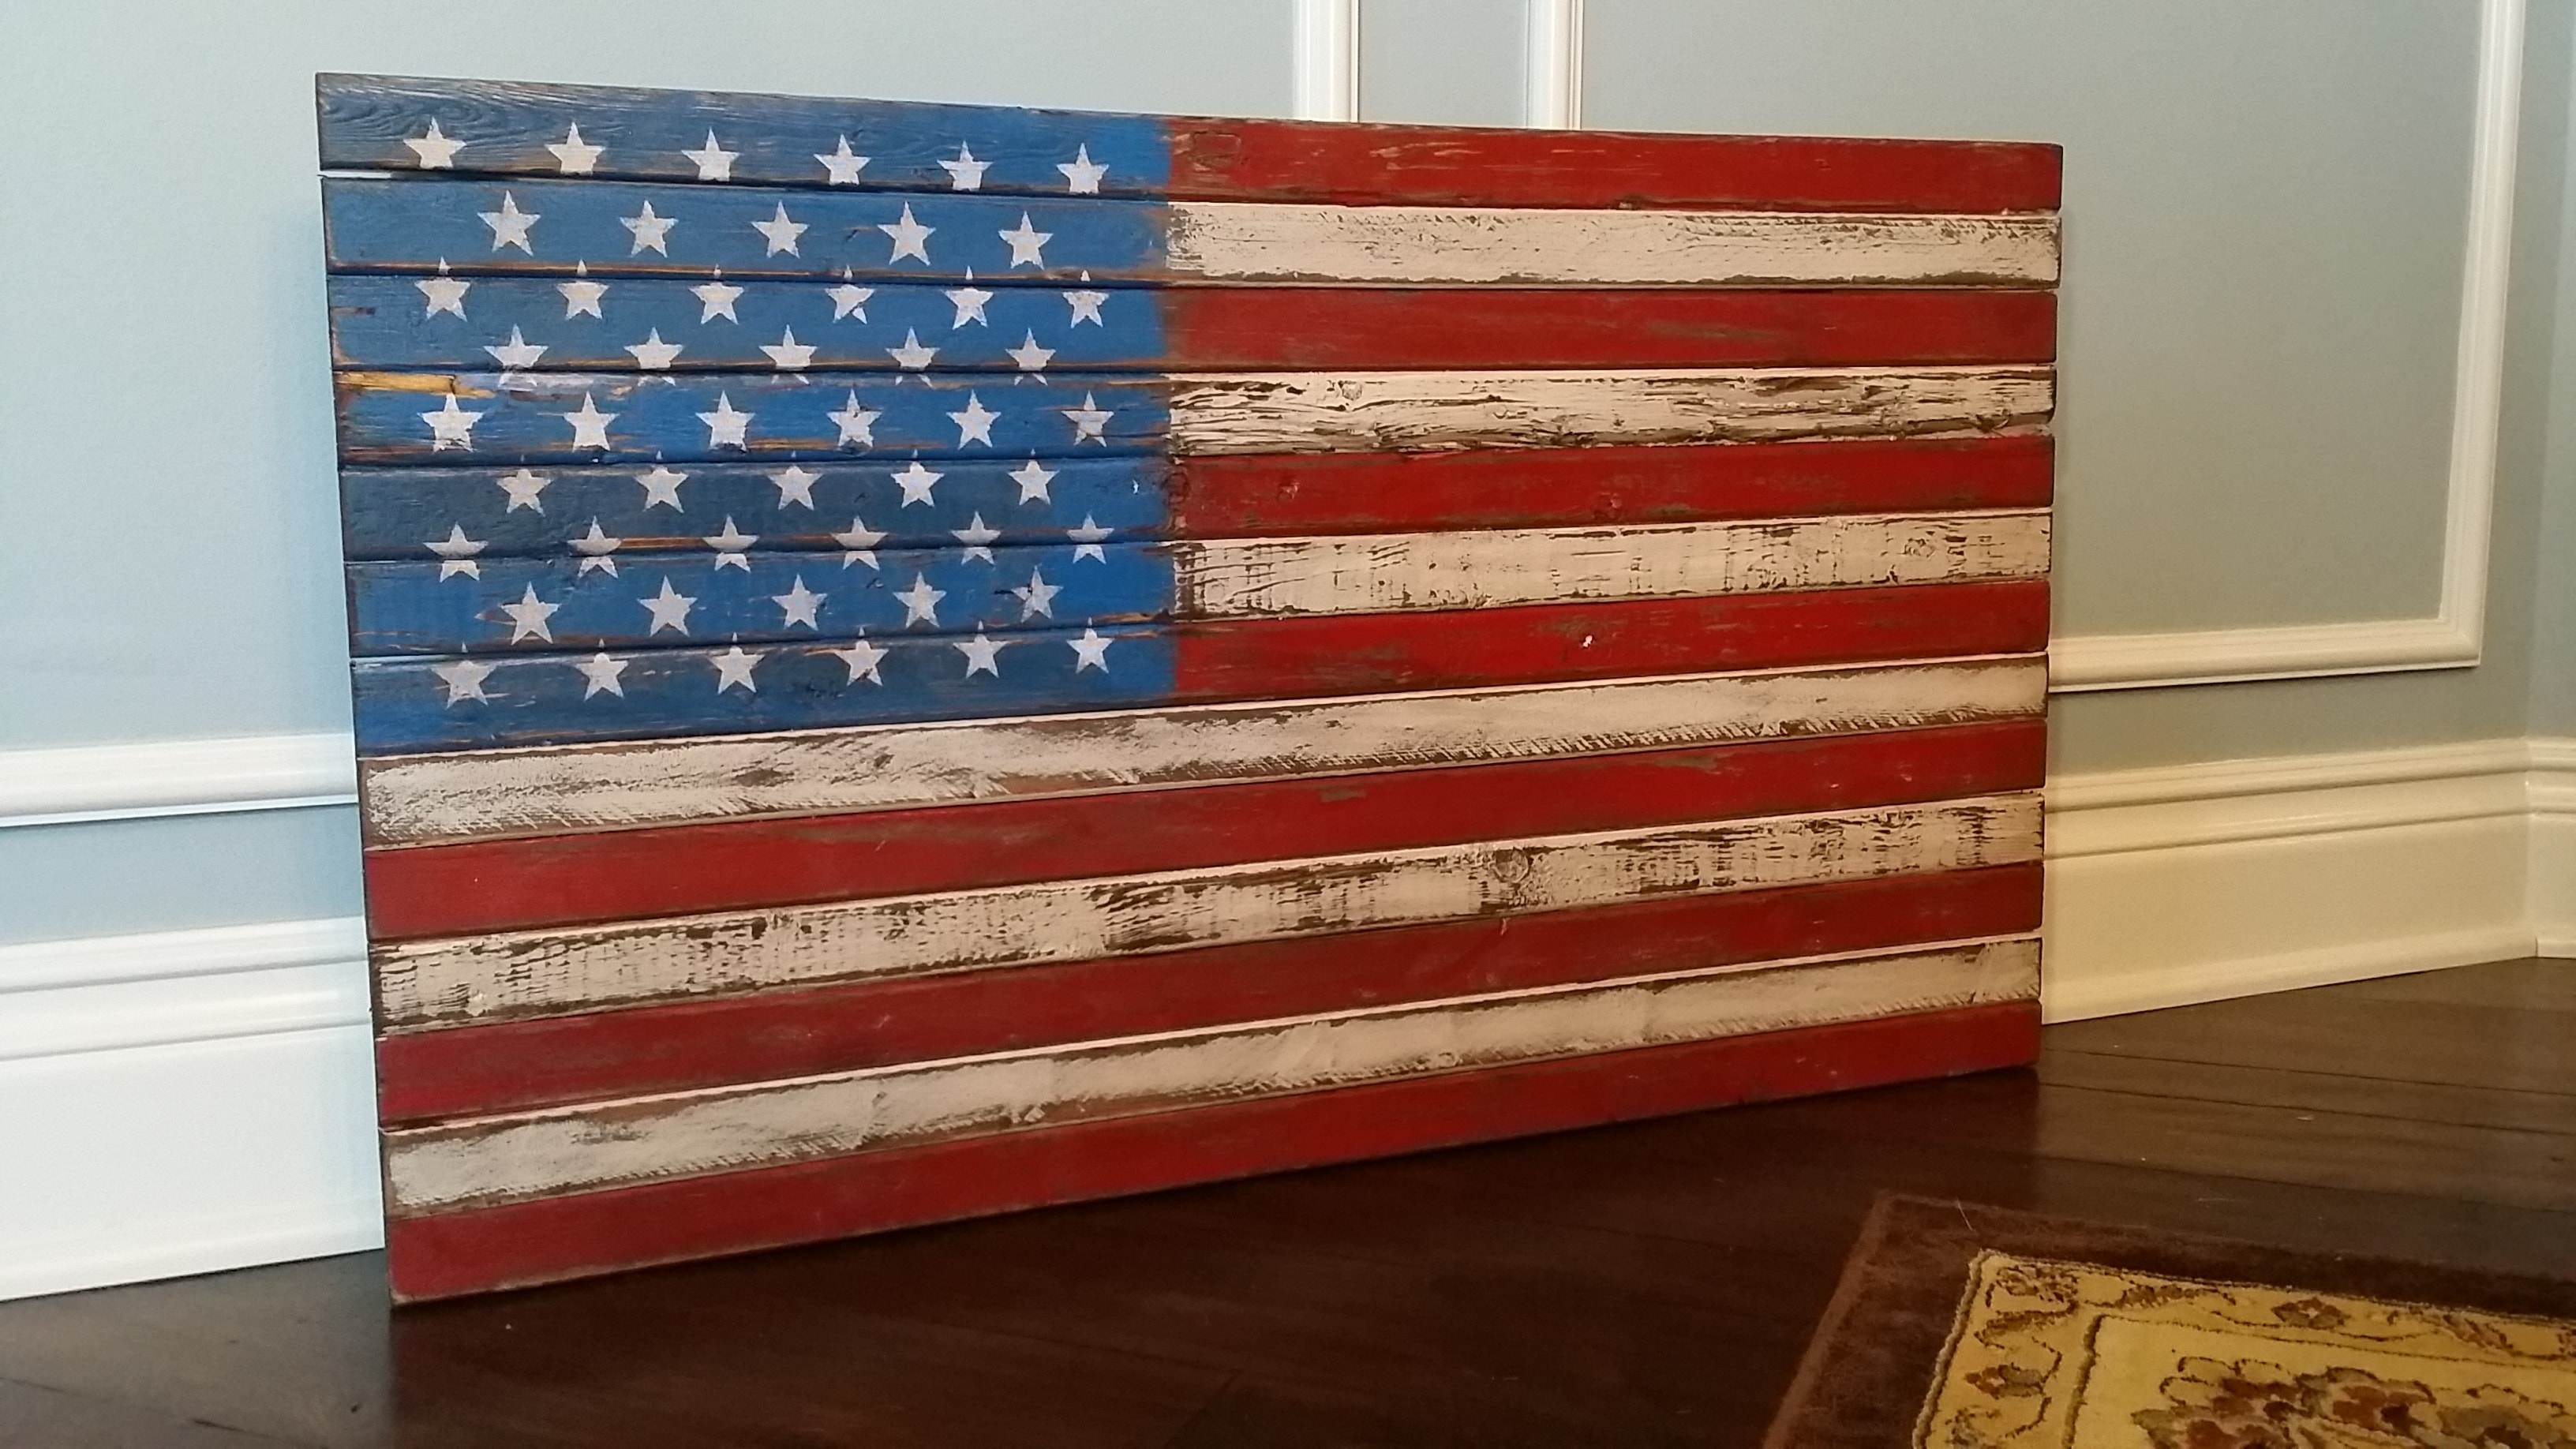 Handmade In Usa, Vintage, Rustic And Distressed Wooden U.s. American inside American Flag Wall Art (Image 9 of 20)